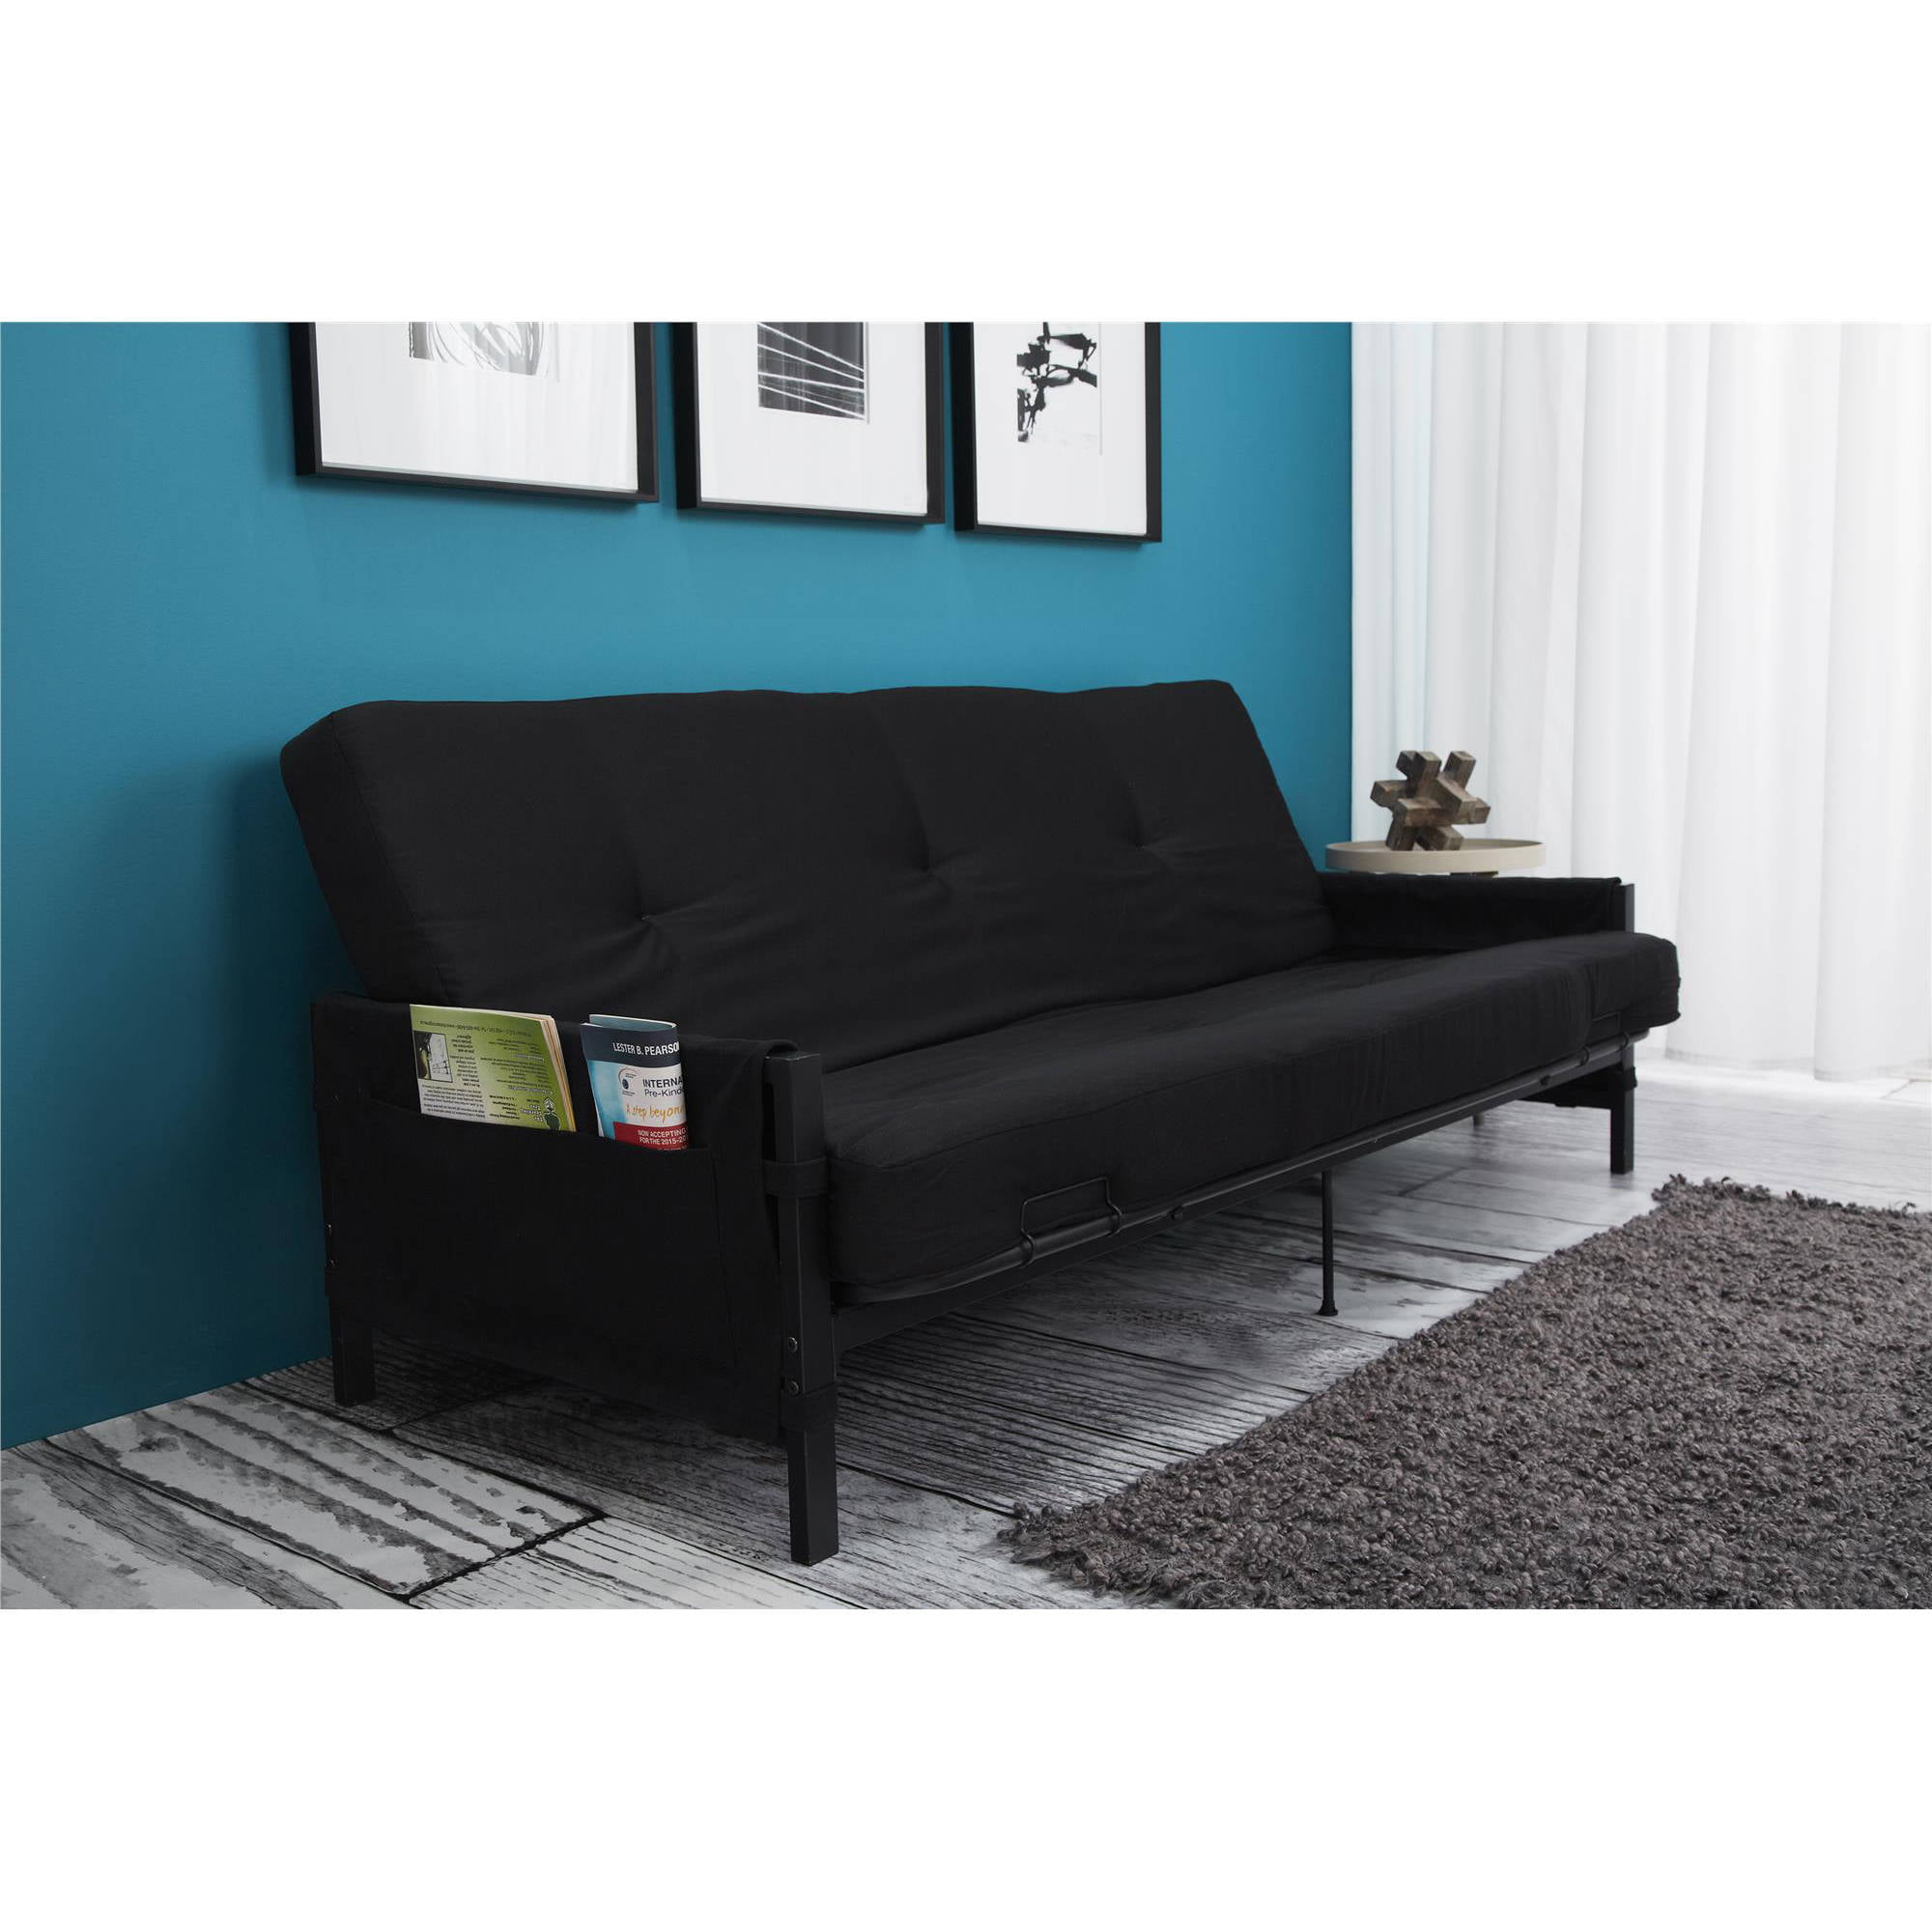 at look modern beds lots bed with big couch target a couches spaces futon canada sofas small sofa cheap low vintage walmart costco profile style for